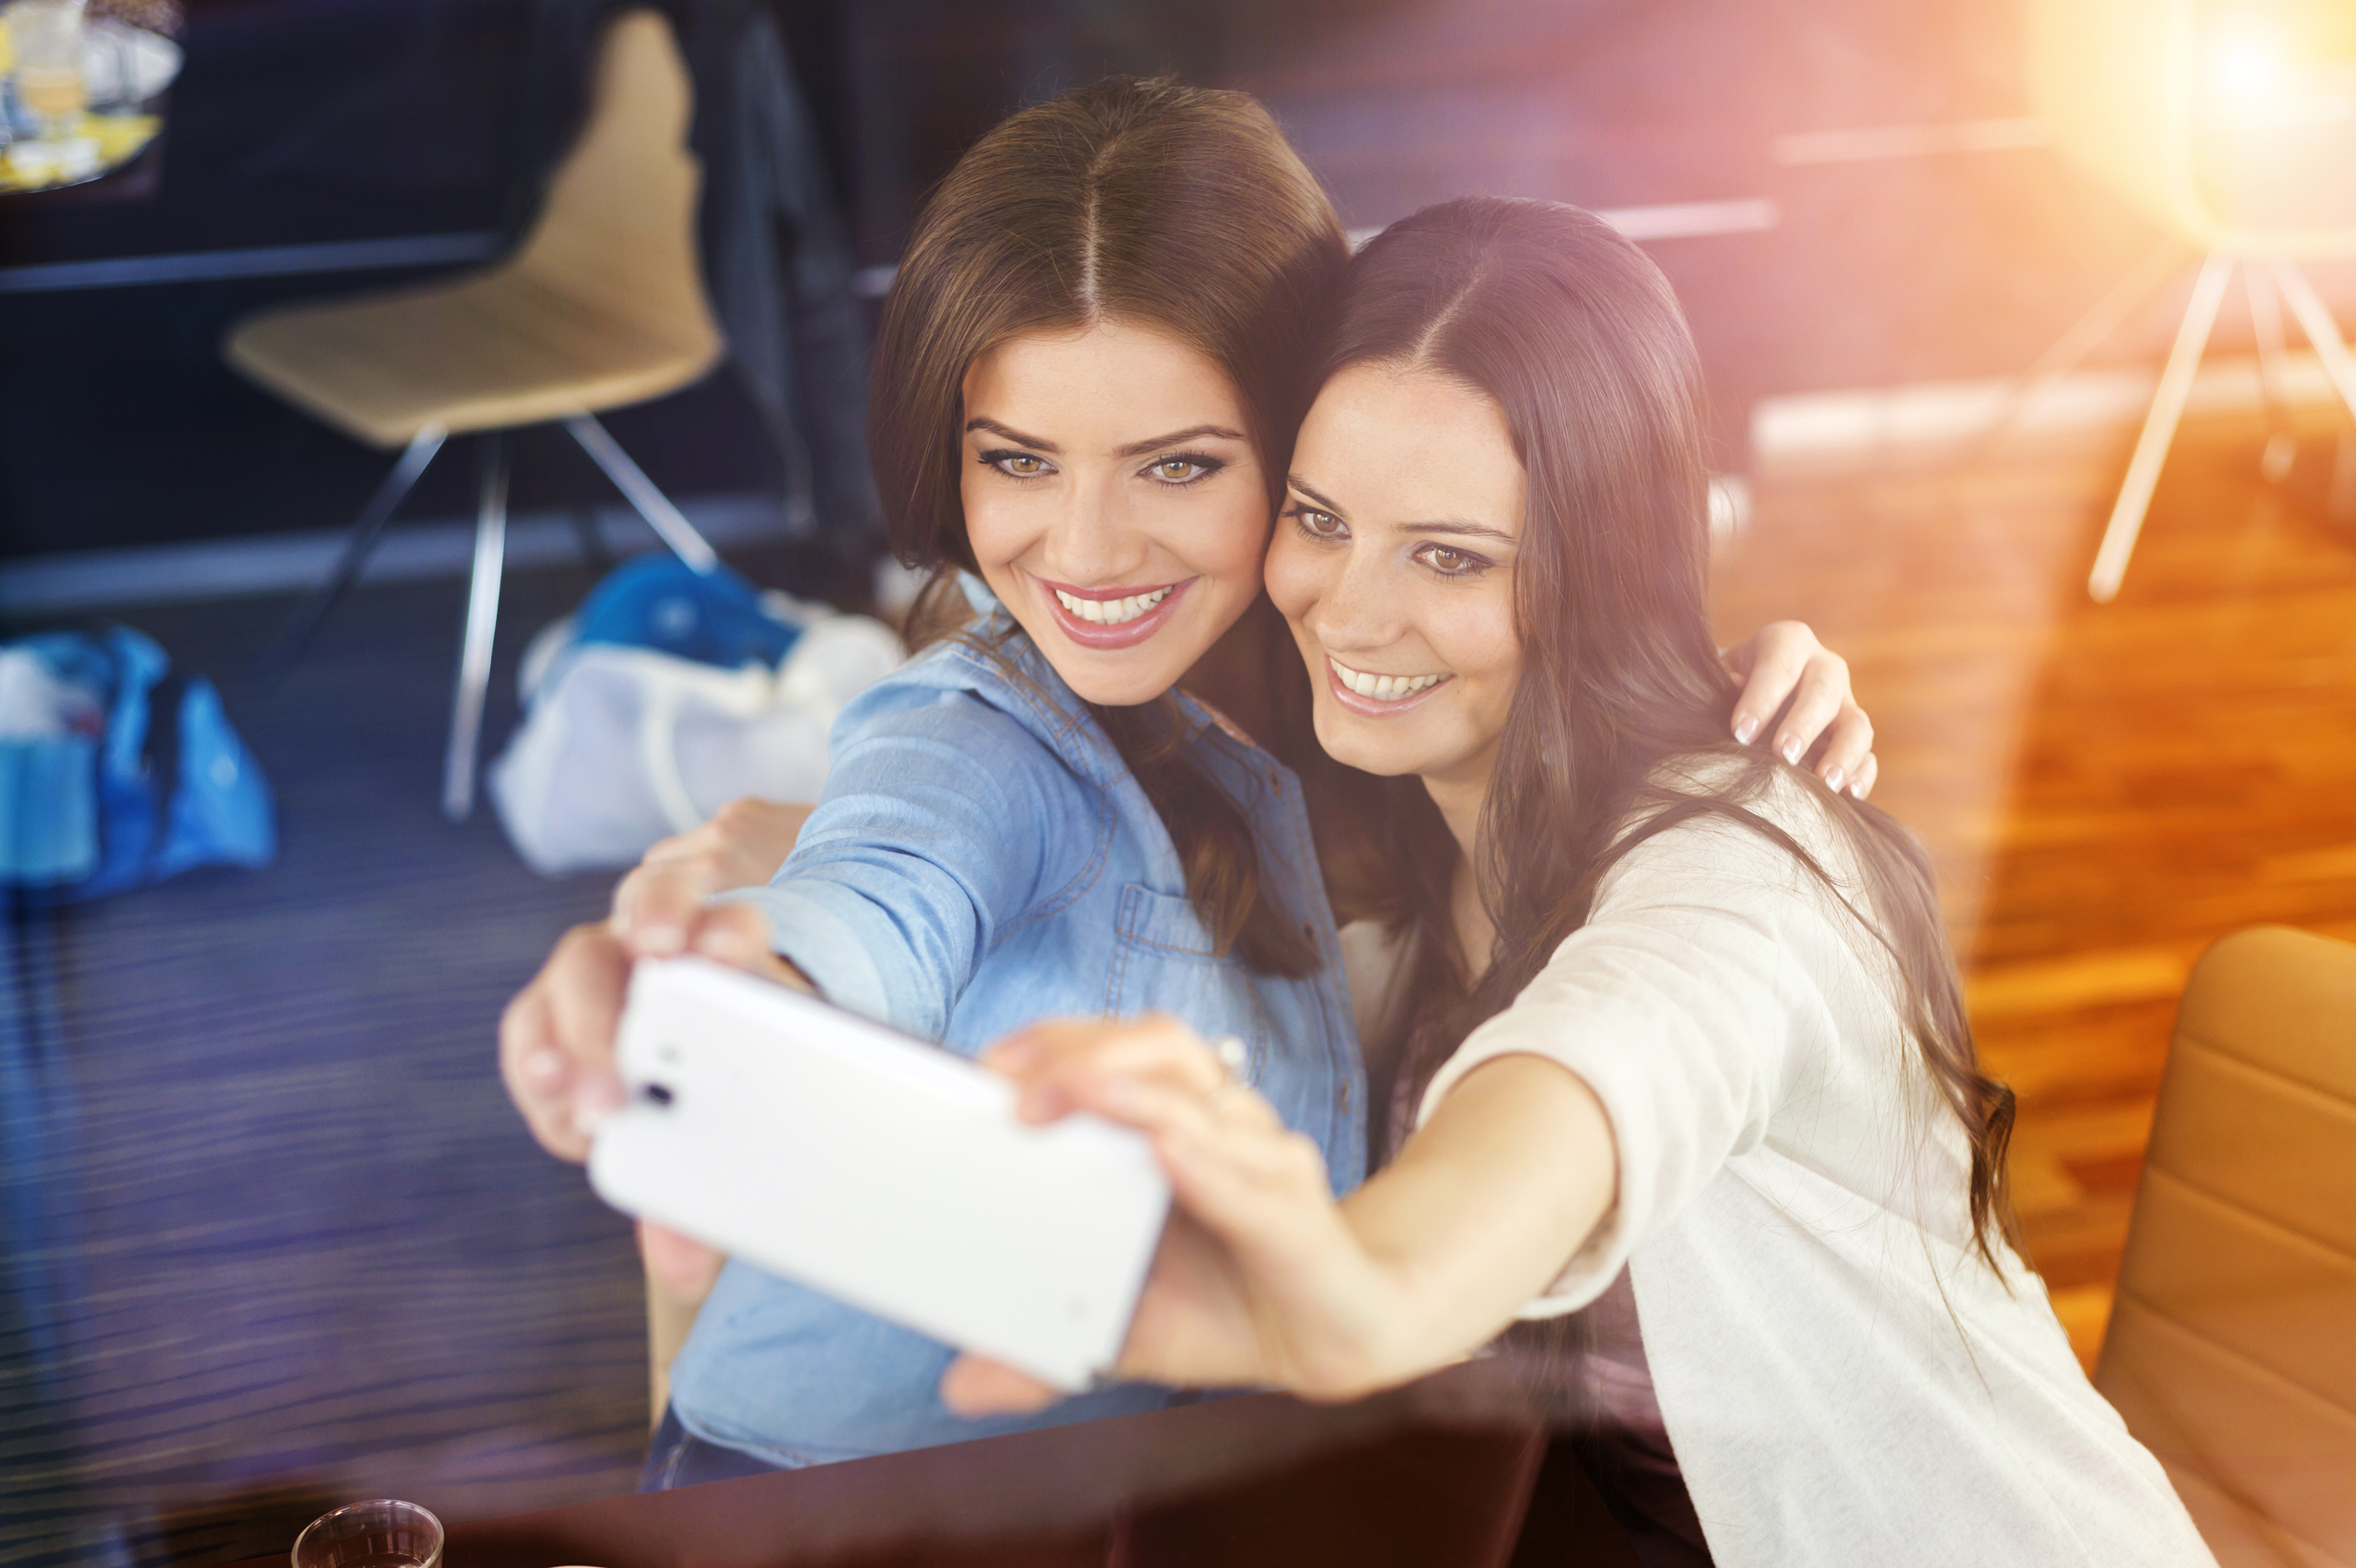 graphicstock-two-beautiful-women-taking-selfie-in-cafe_SAWO3da-W